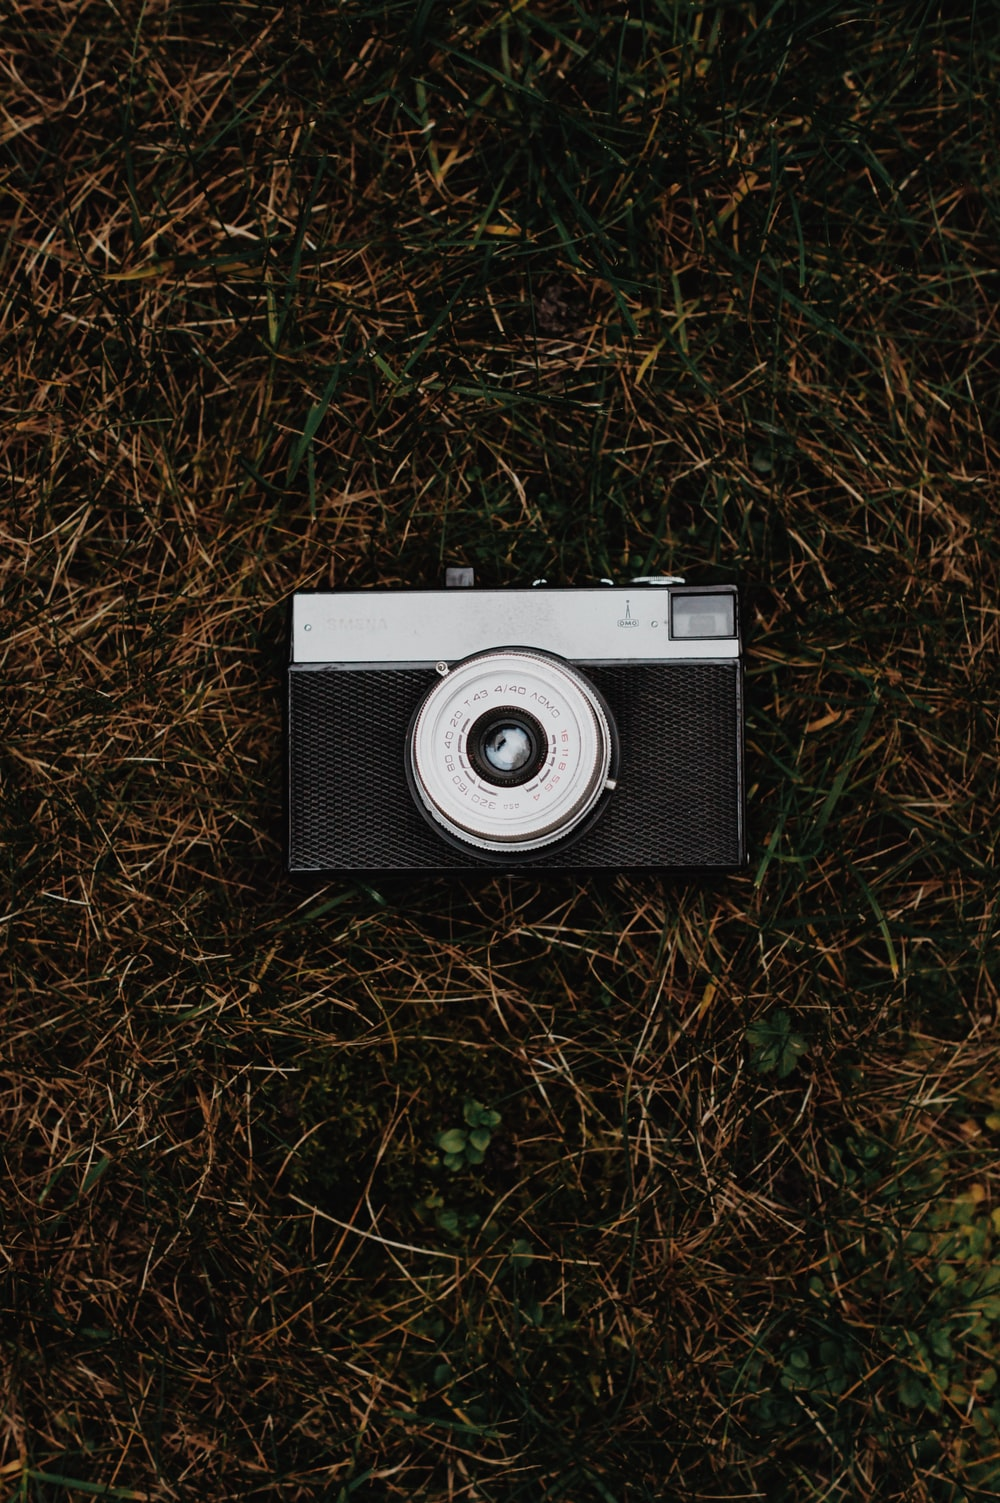 black and gray camera on grass